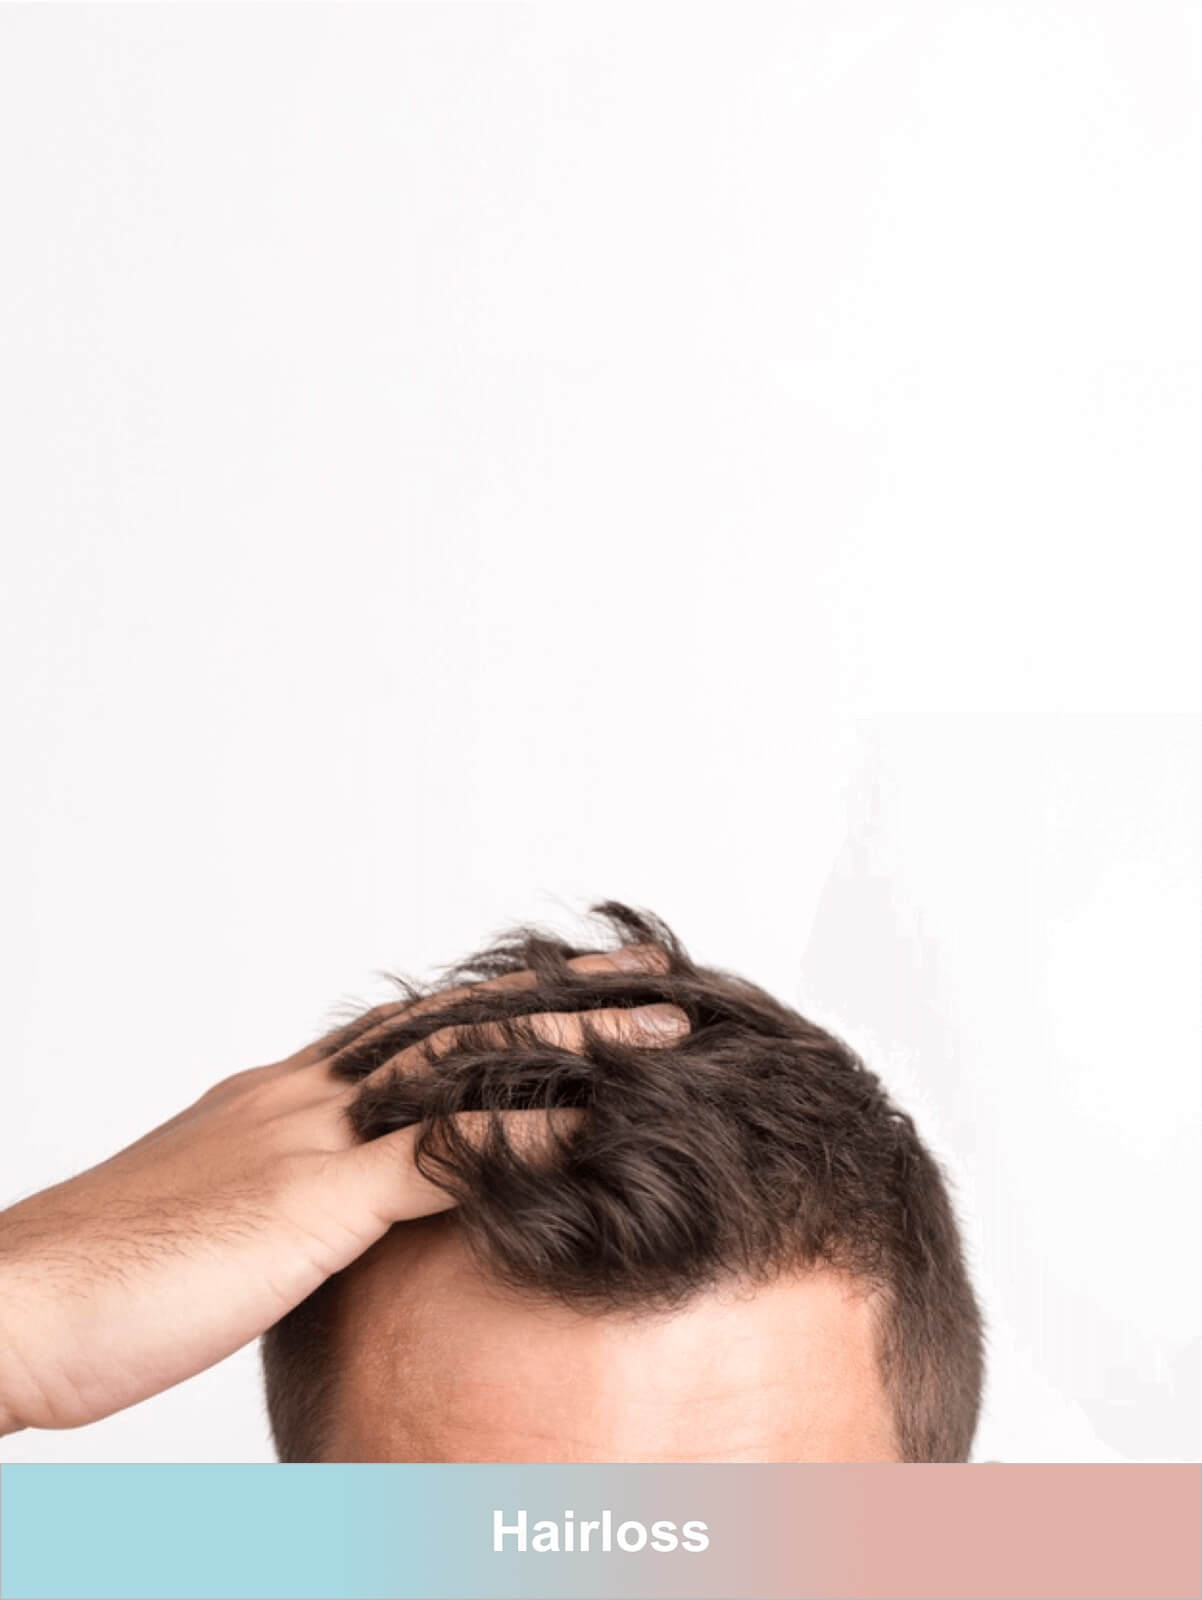 hairloss is worst condition men face causing there low self esteem. Buy online at allgenericcure mens hair loss products